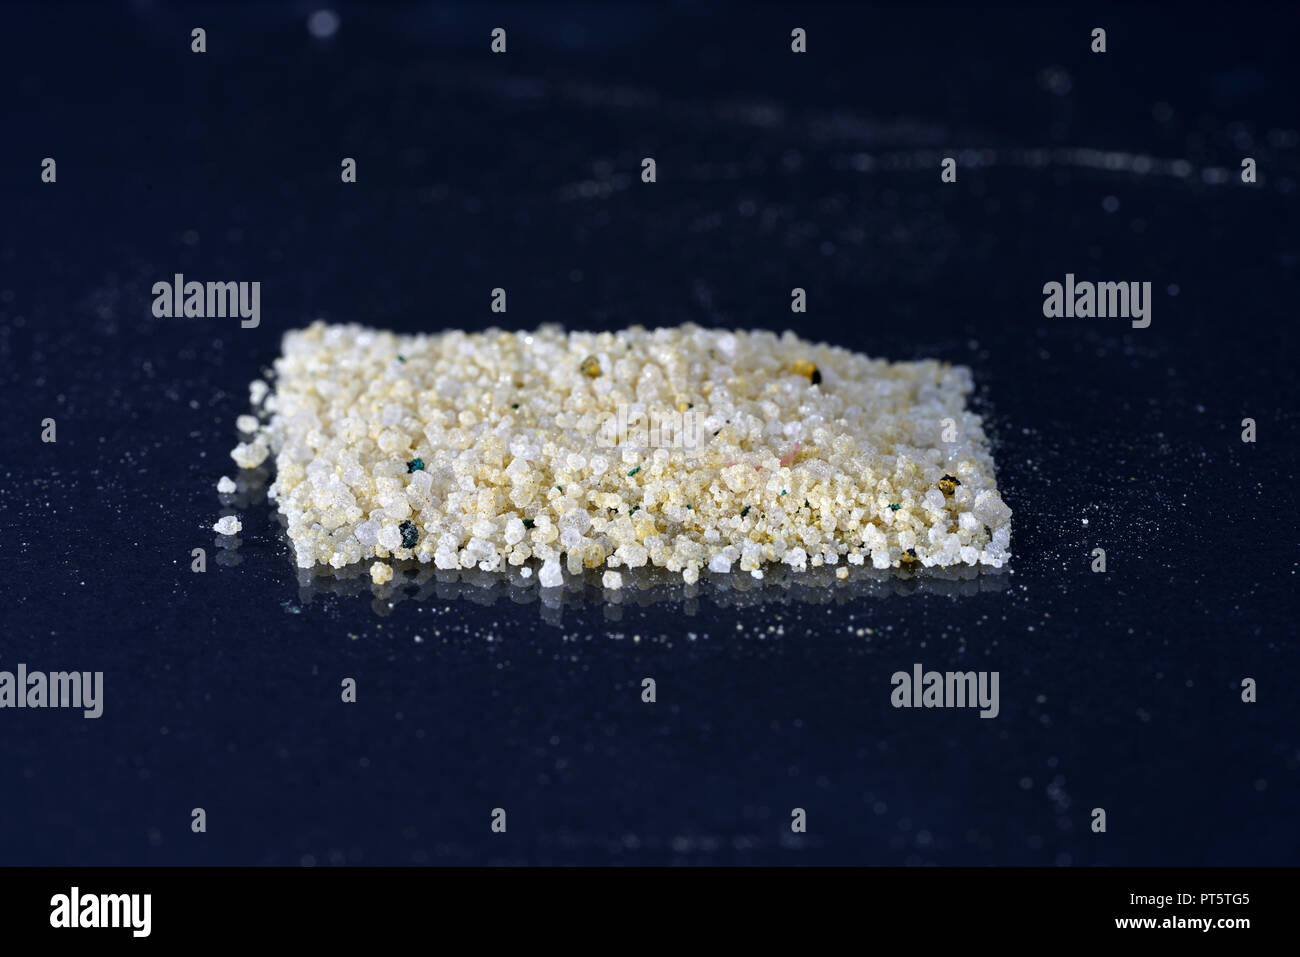 Ammonium ferrous sulfate, is a salt consisting of iron, ammonium and sulfate ions - Stock Image